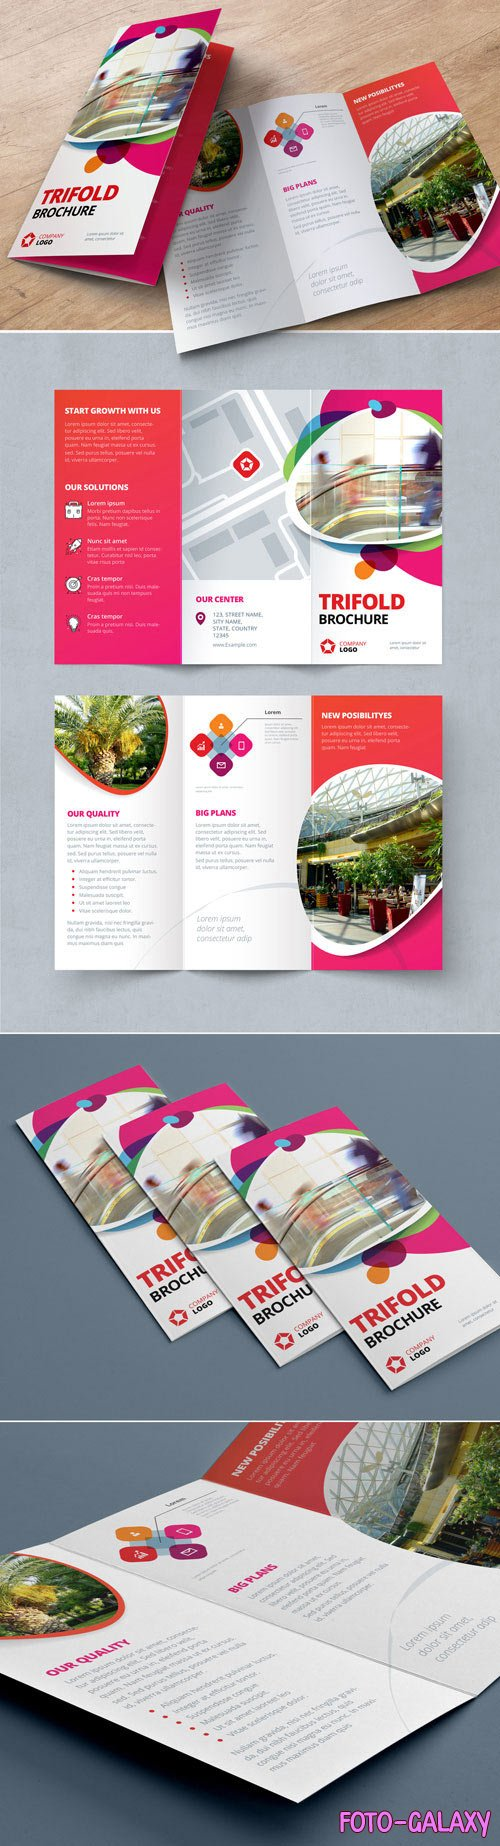 Pink and Red Gradient Trifold Brochure Layout with Abstract Spots 212820437